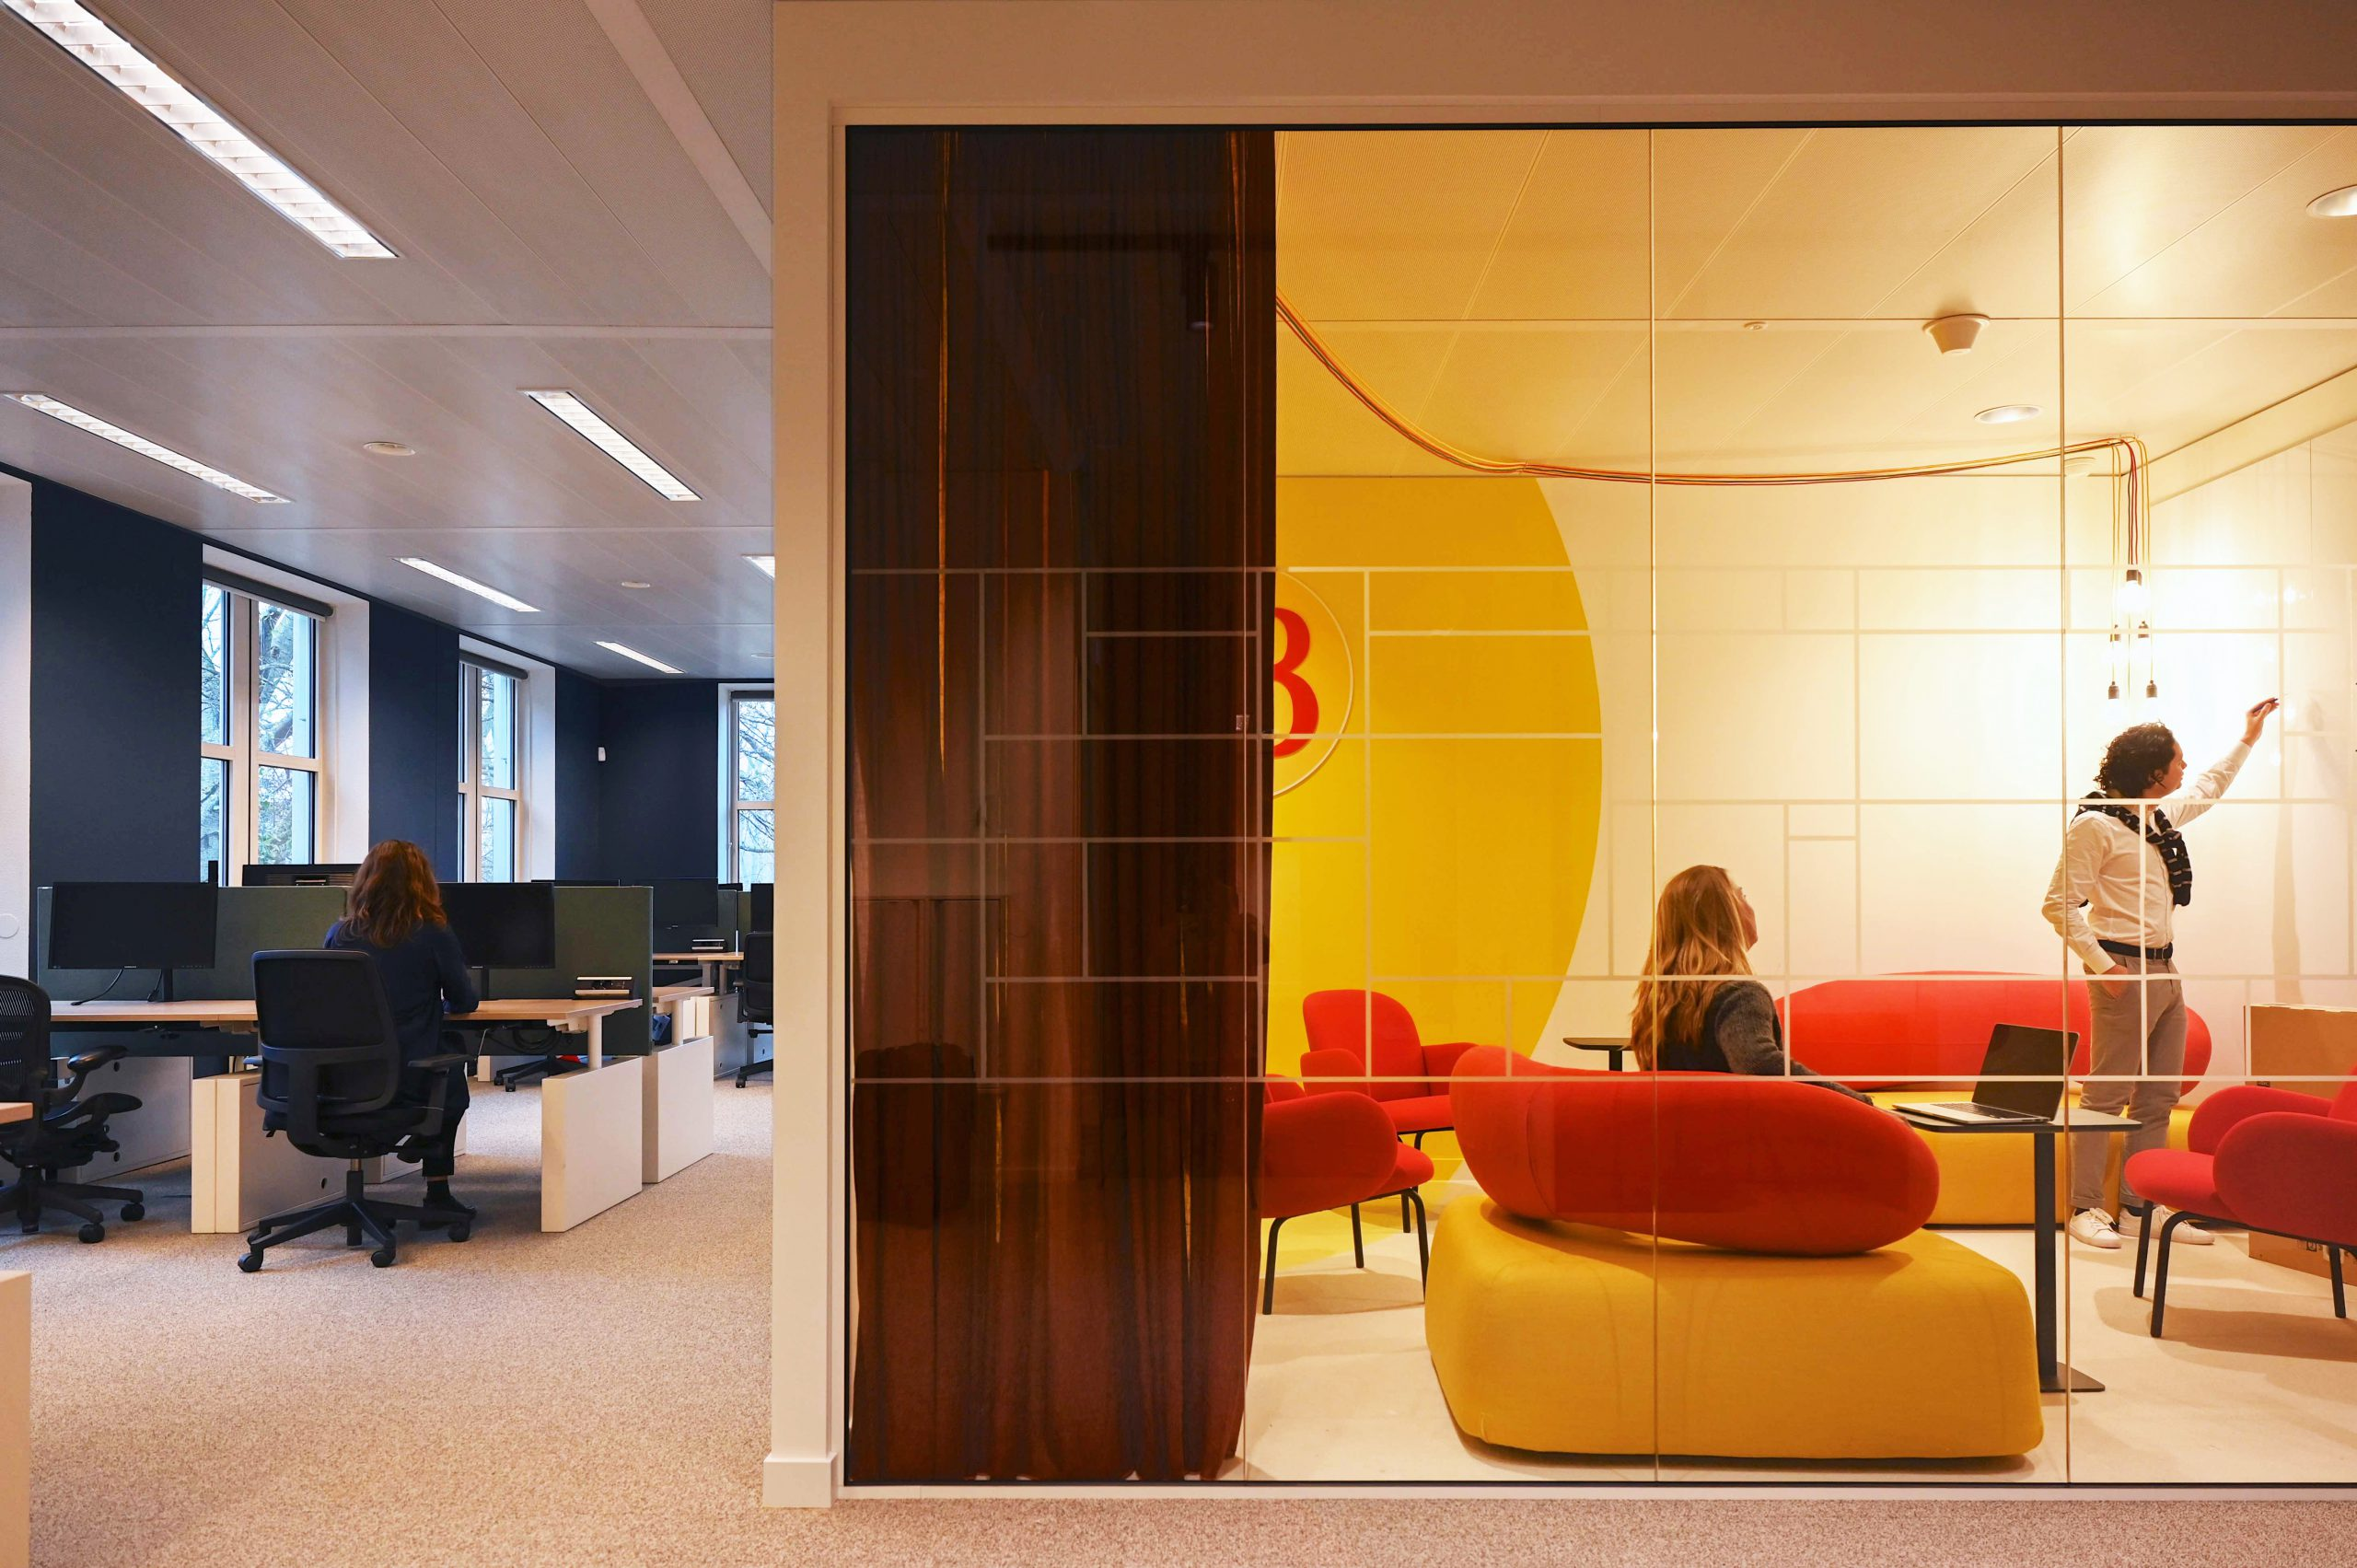 Informal meeting room at Diageo's offices in Amsterdam, The Netherlands